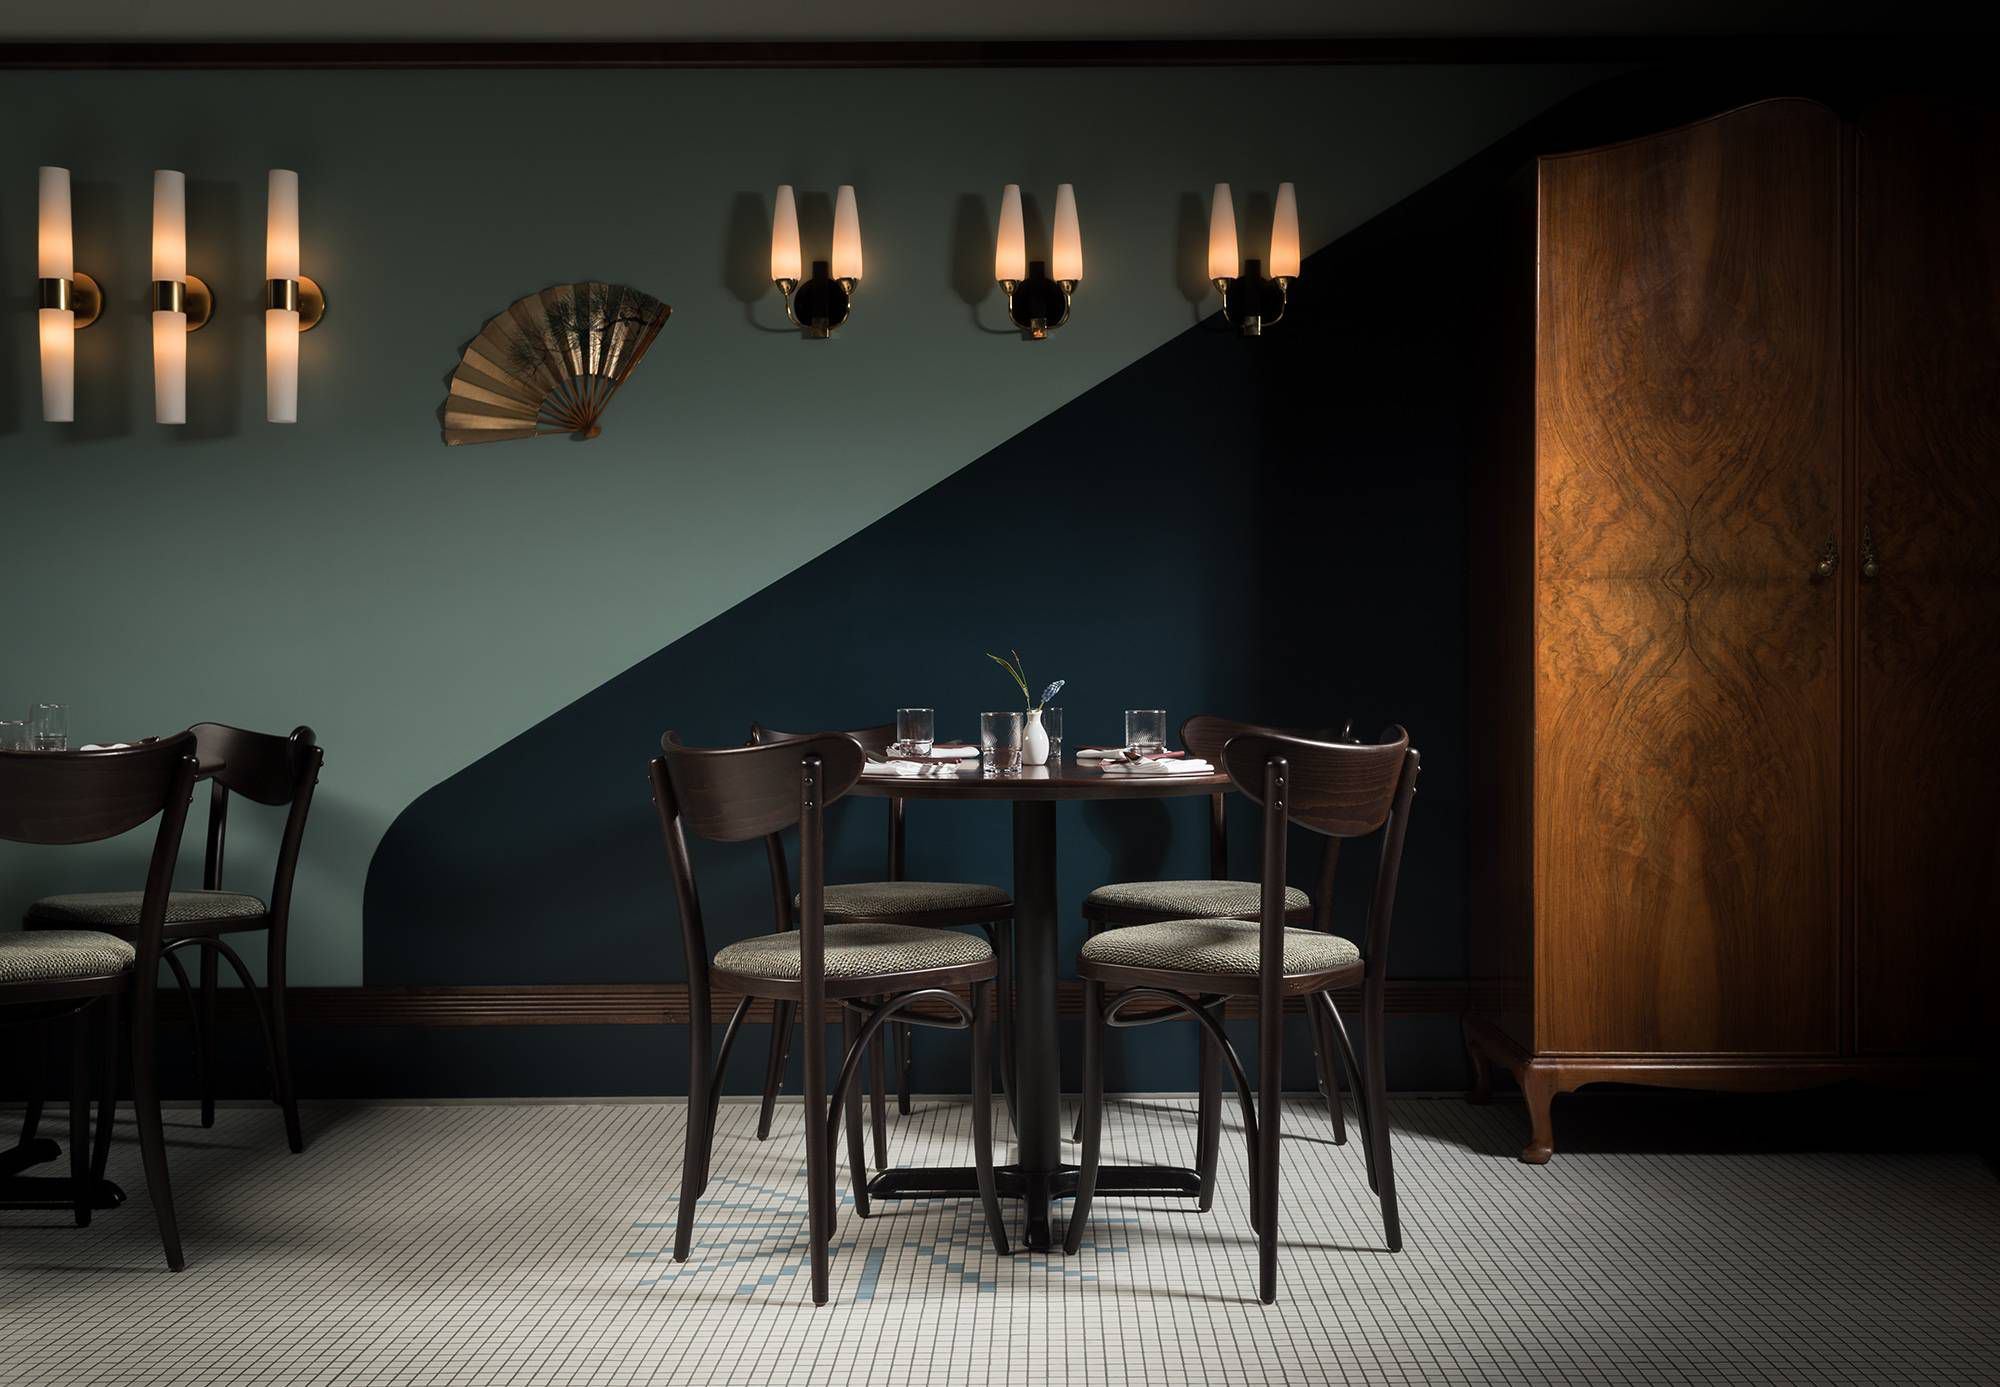 How Restaurant Lighting Helps Set The Mood And Makes You